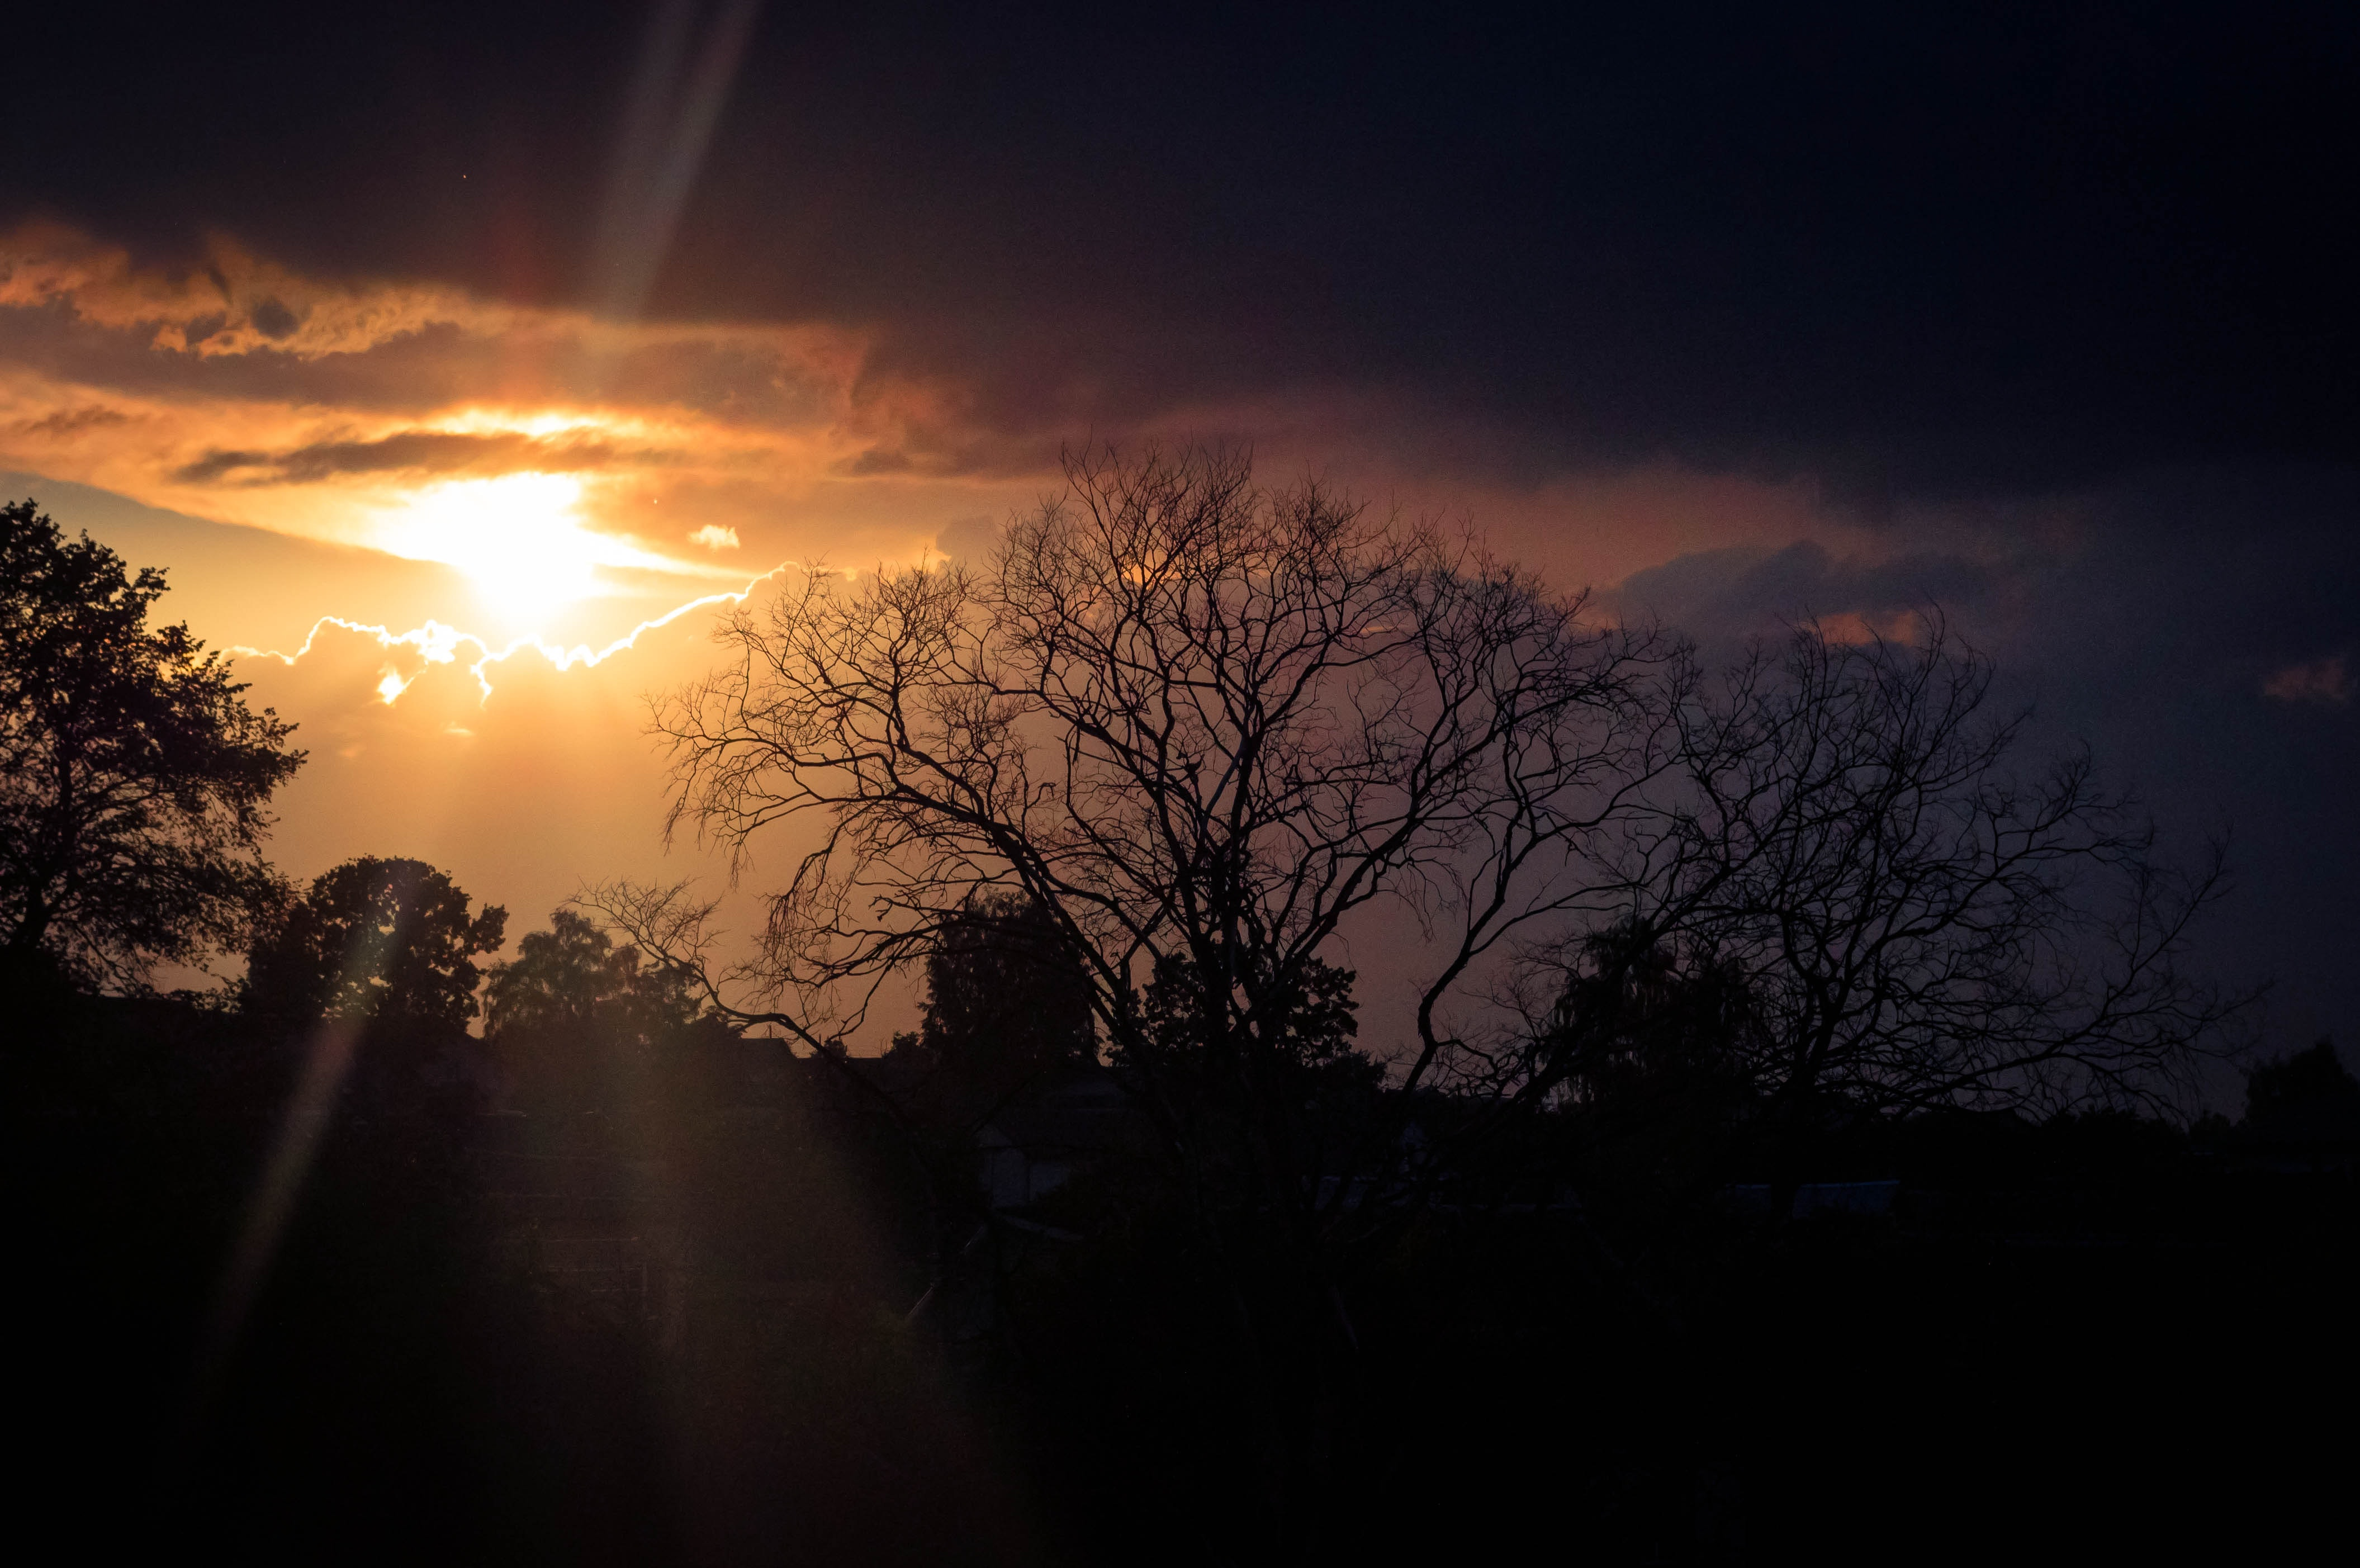 Silhouette of Trees during Golden Hour, Backlit, Light, Trees, Sunset, HQ Photo